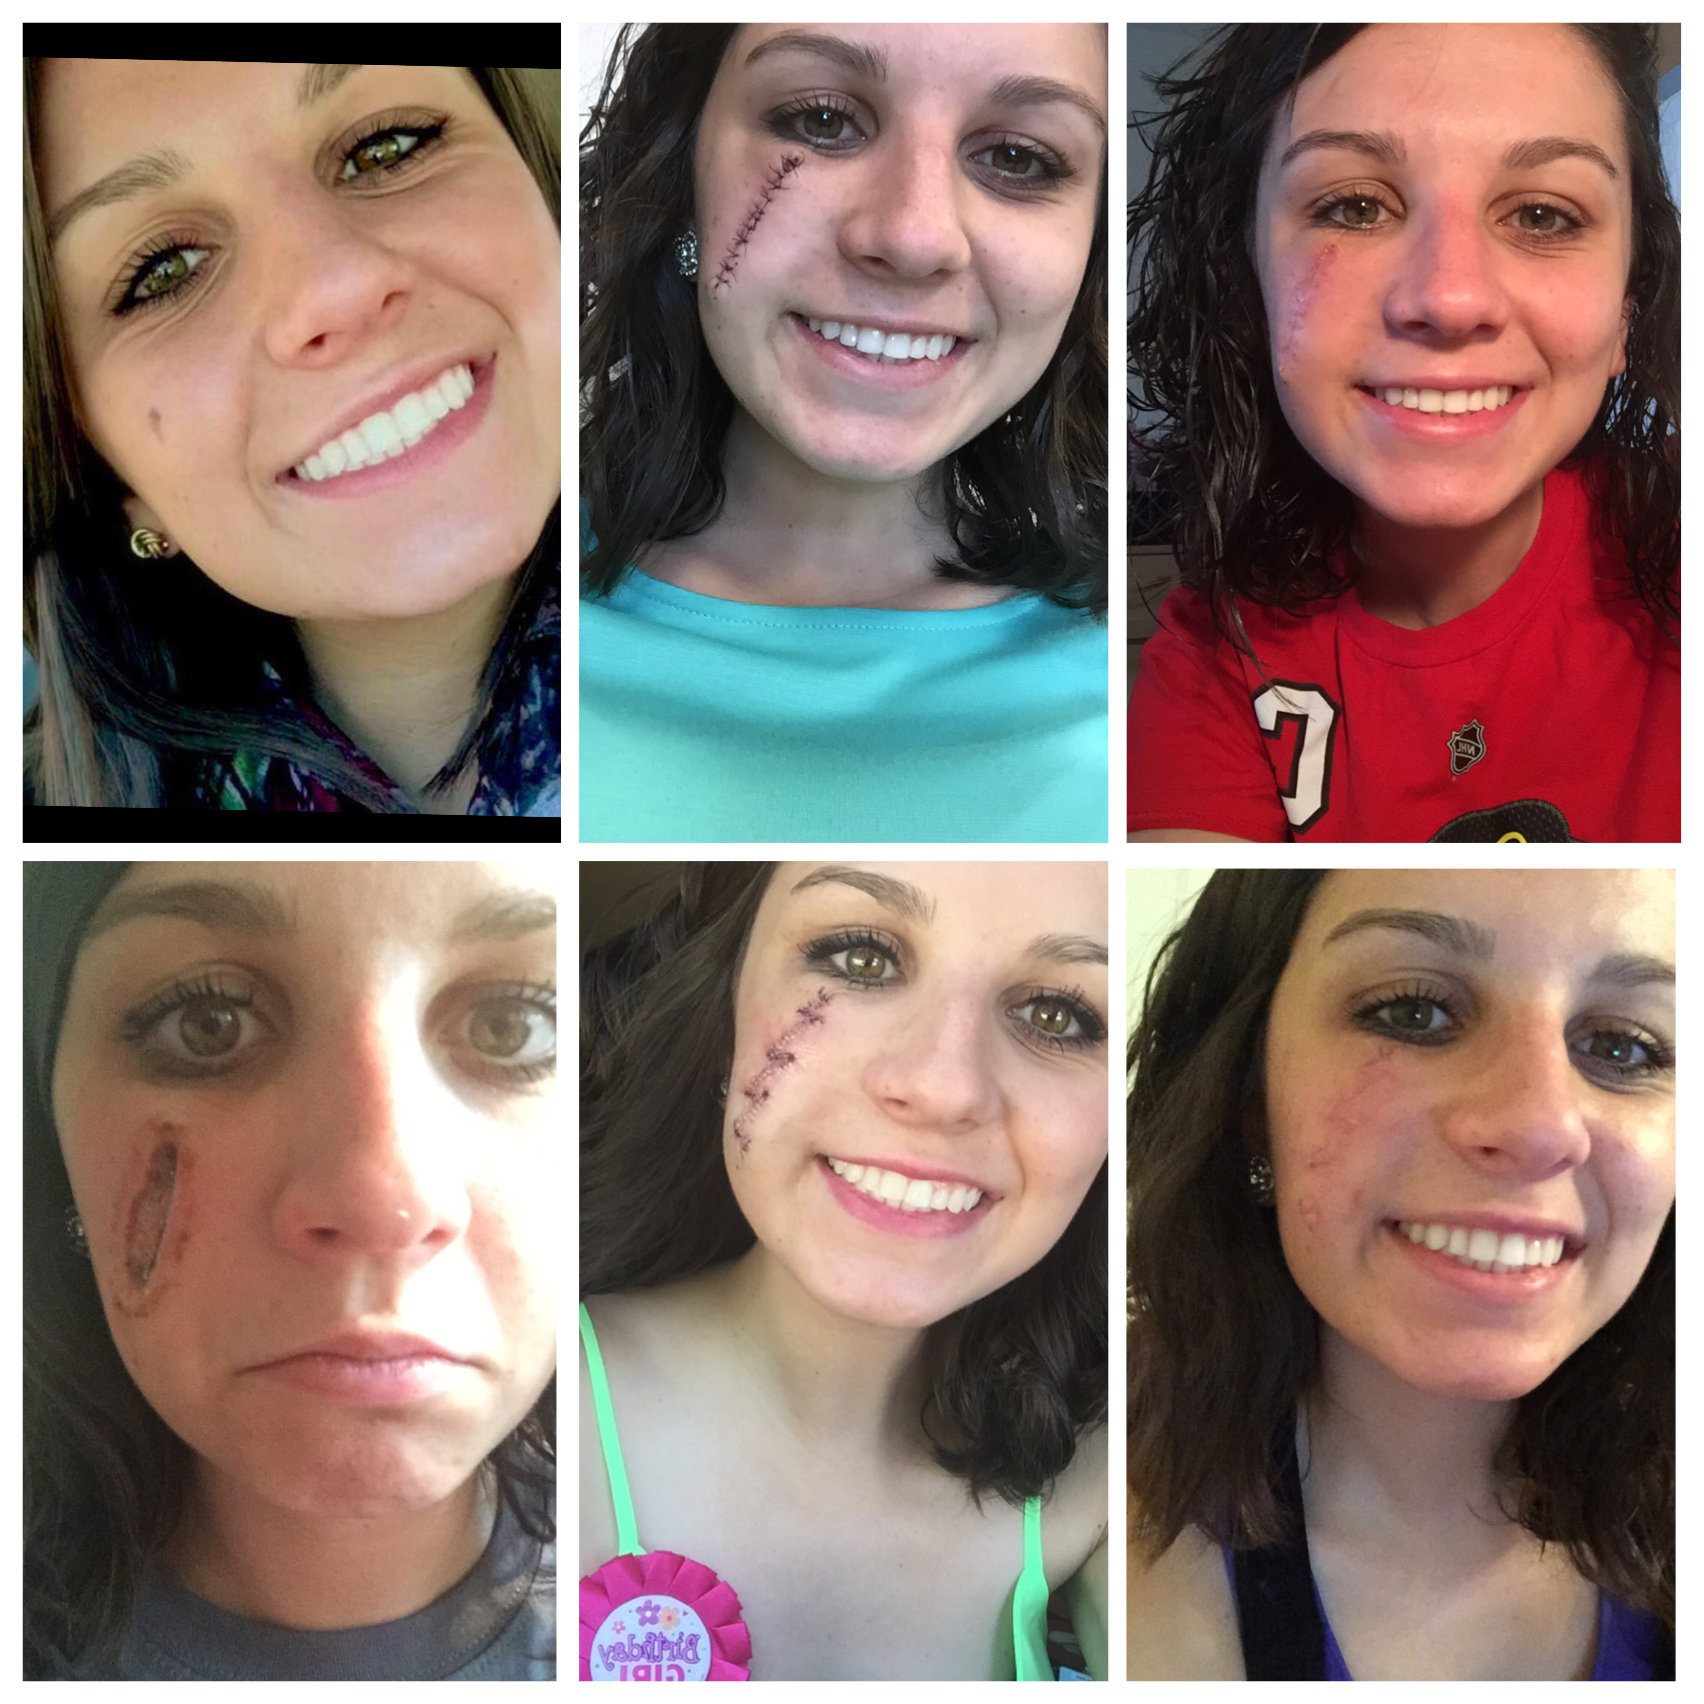 Showing before and after pictures of a woman with melanoma on her face